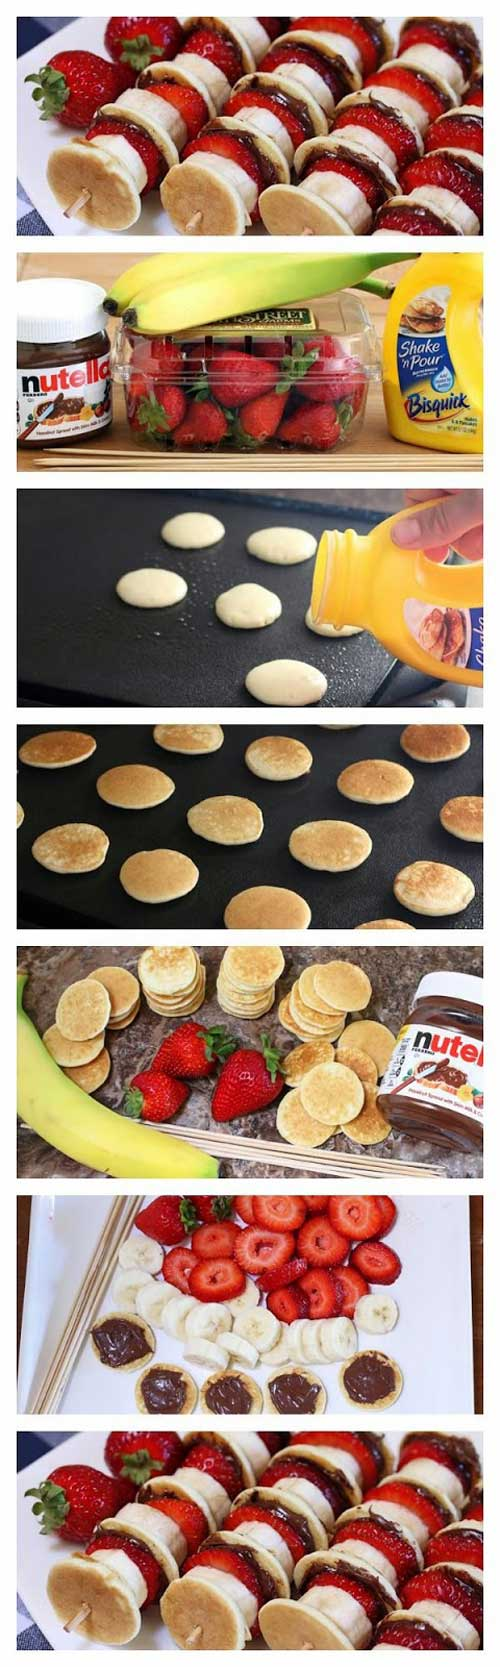 These Nutella Mini Pancake Kabobs are soft and pillowy pancakes slathered with Nutella and layered on skewers with fresh strawberries and banana. #nutella #pancakes #breakfast